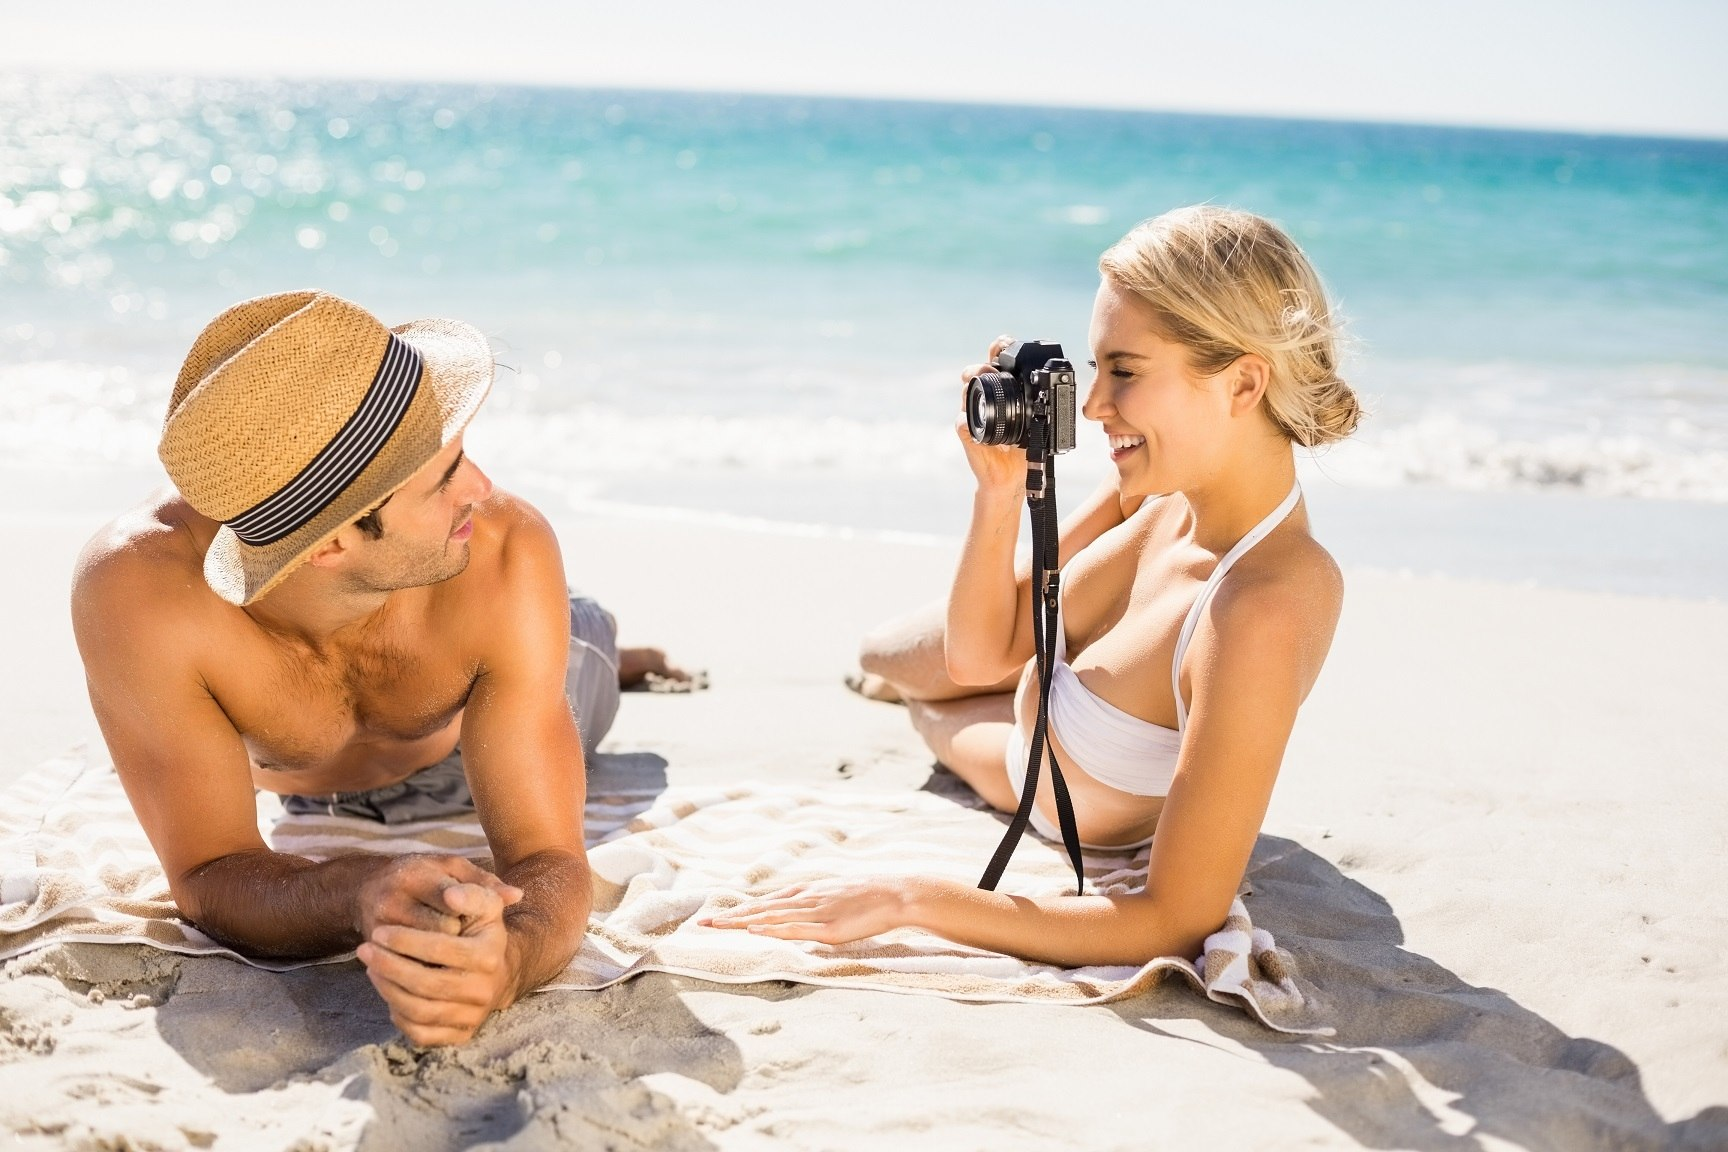 Young couple laying on a sunny beach taking photograph. with the ocean in background.